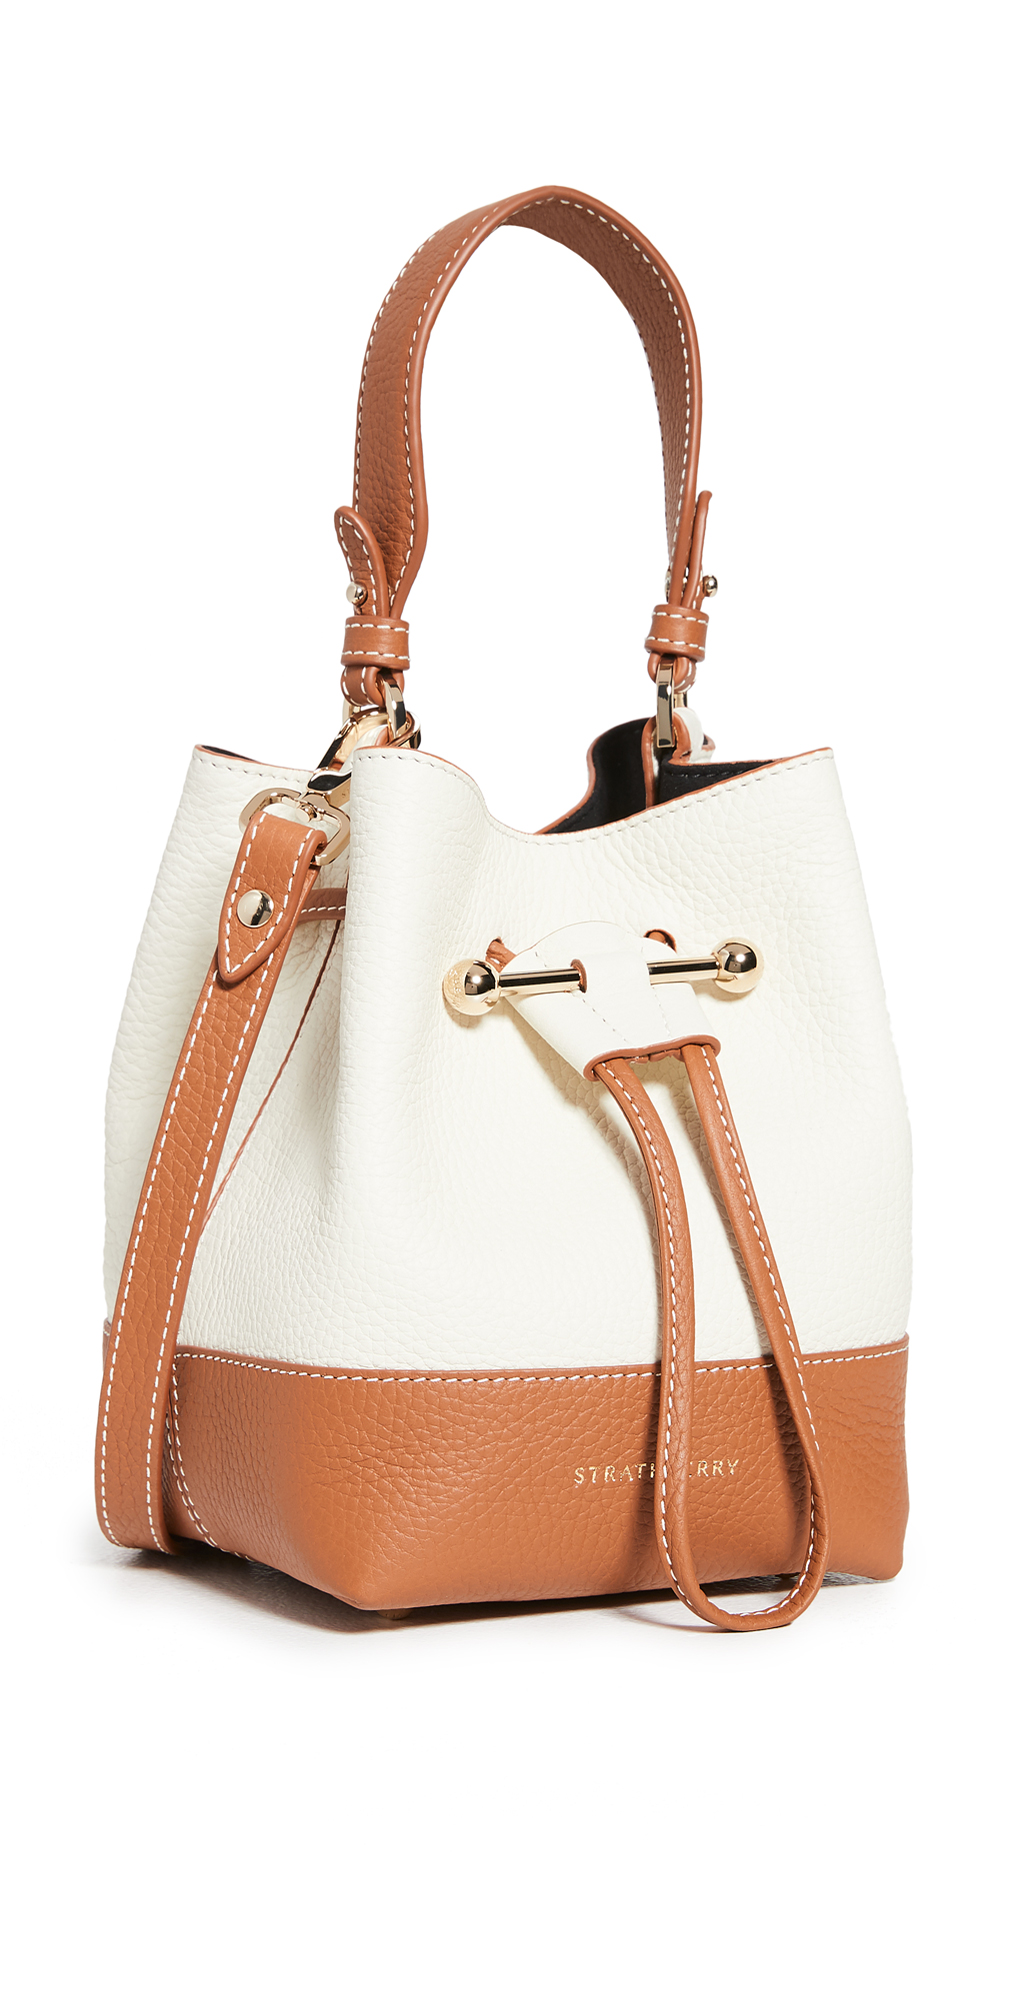 Strathberry Lana Osette Bucket Bag